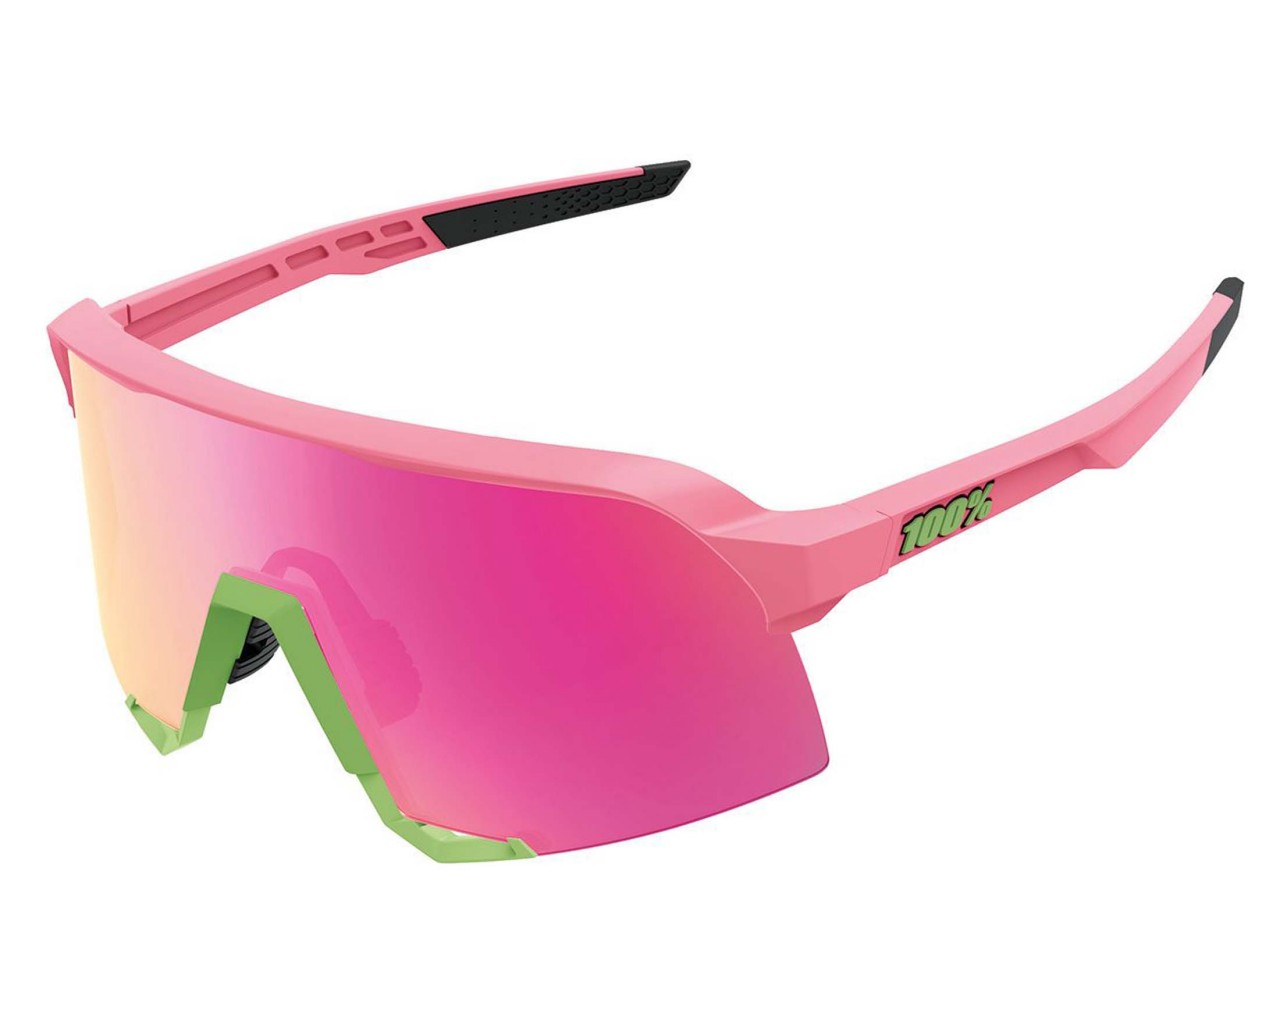 100% S3 - Mirror Lens Bicycle sunglasses | matte washed out neon pink